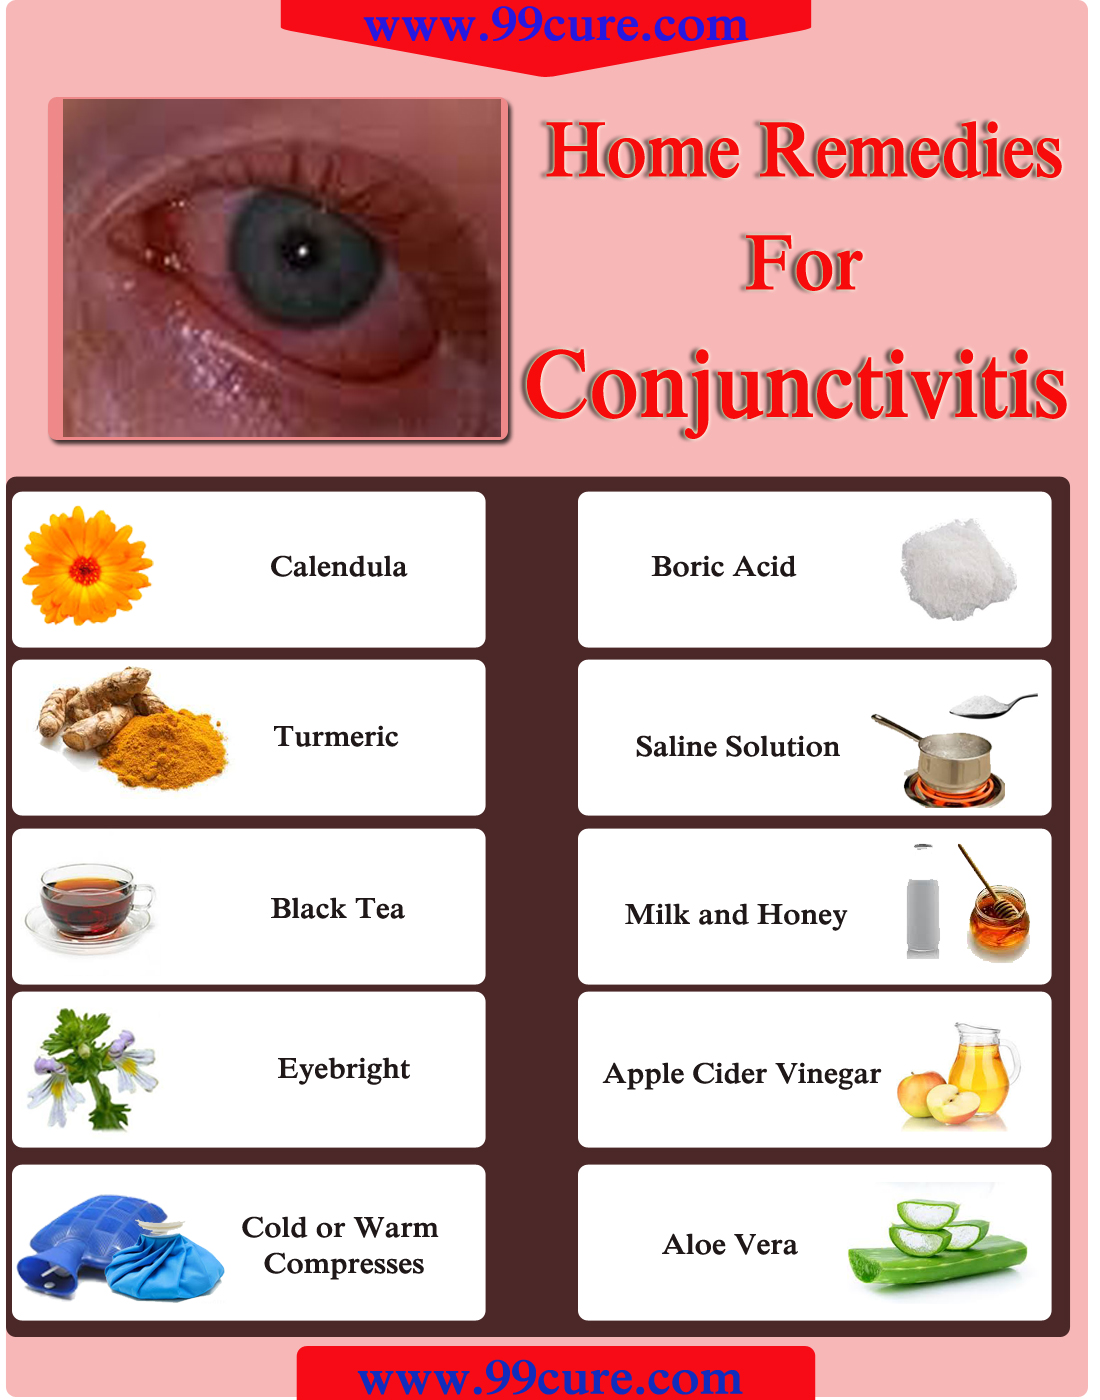 Home Remedies for Conjunctivitis